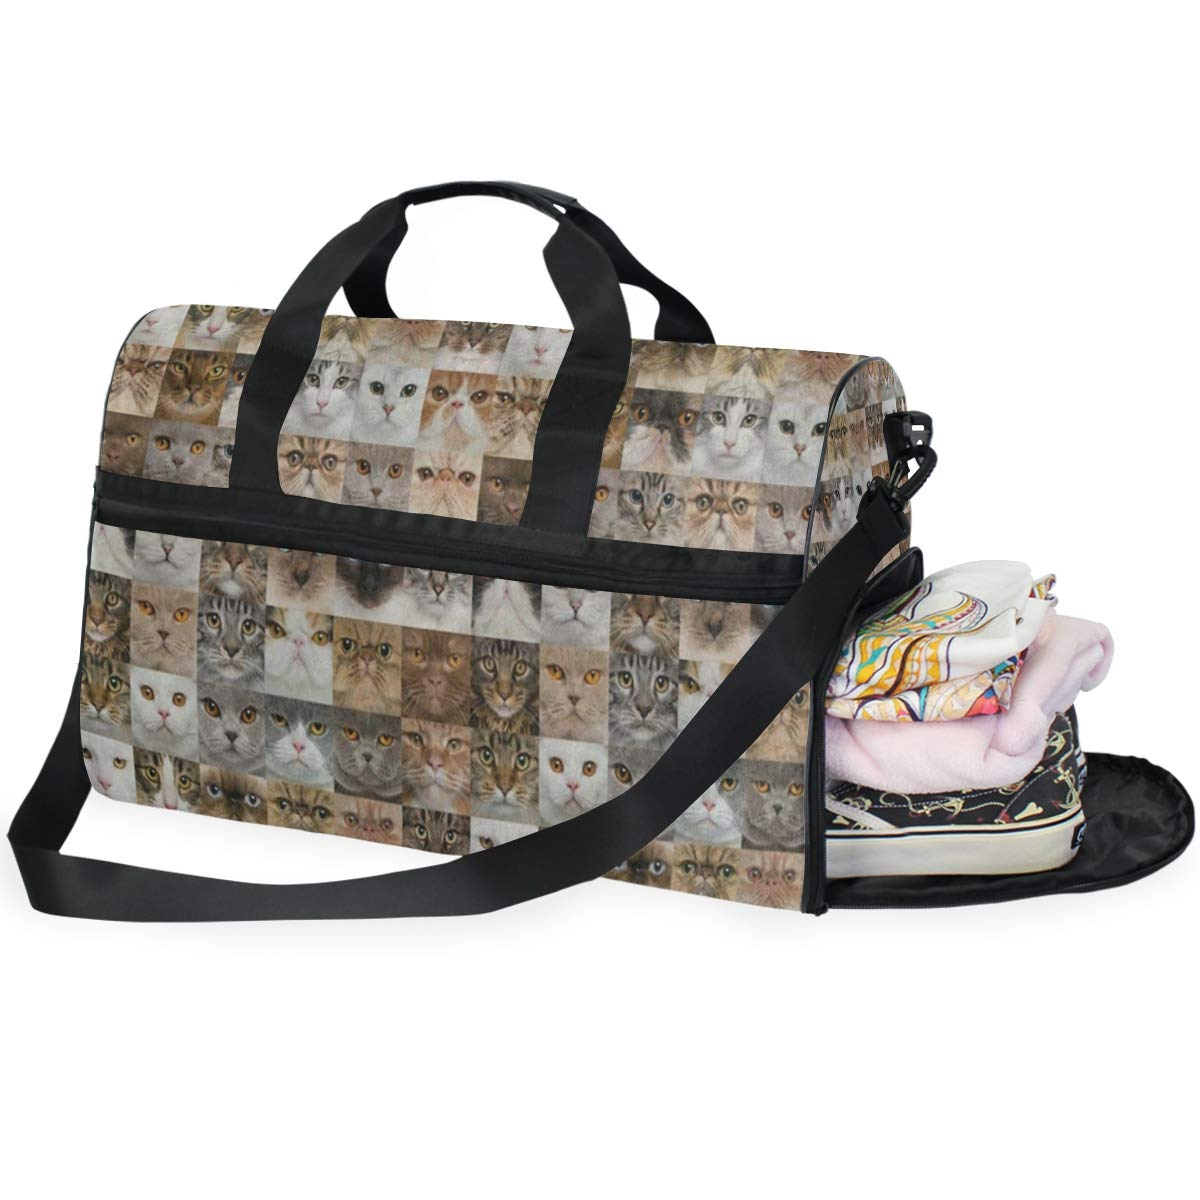 Travel Tote Luggage Weekender Duffle Bag Cute Cat Kitten Head Large Canvas shoulder bag with Shoe Compartment